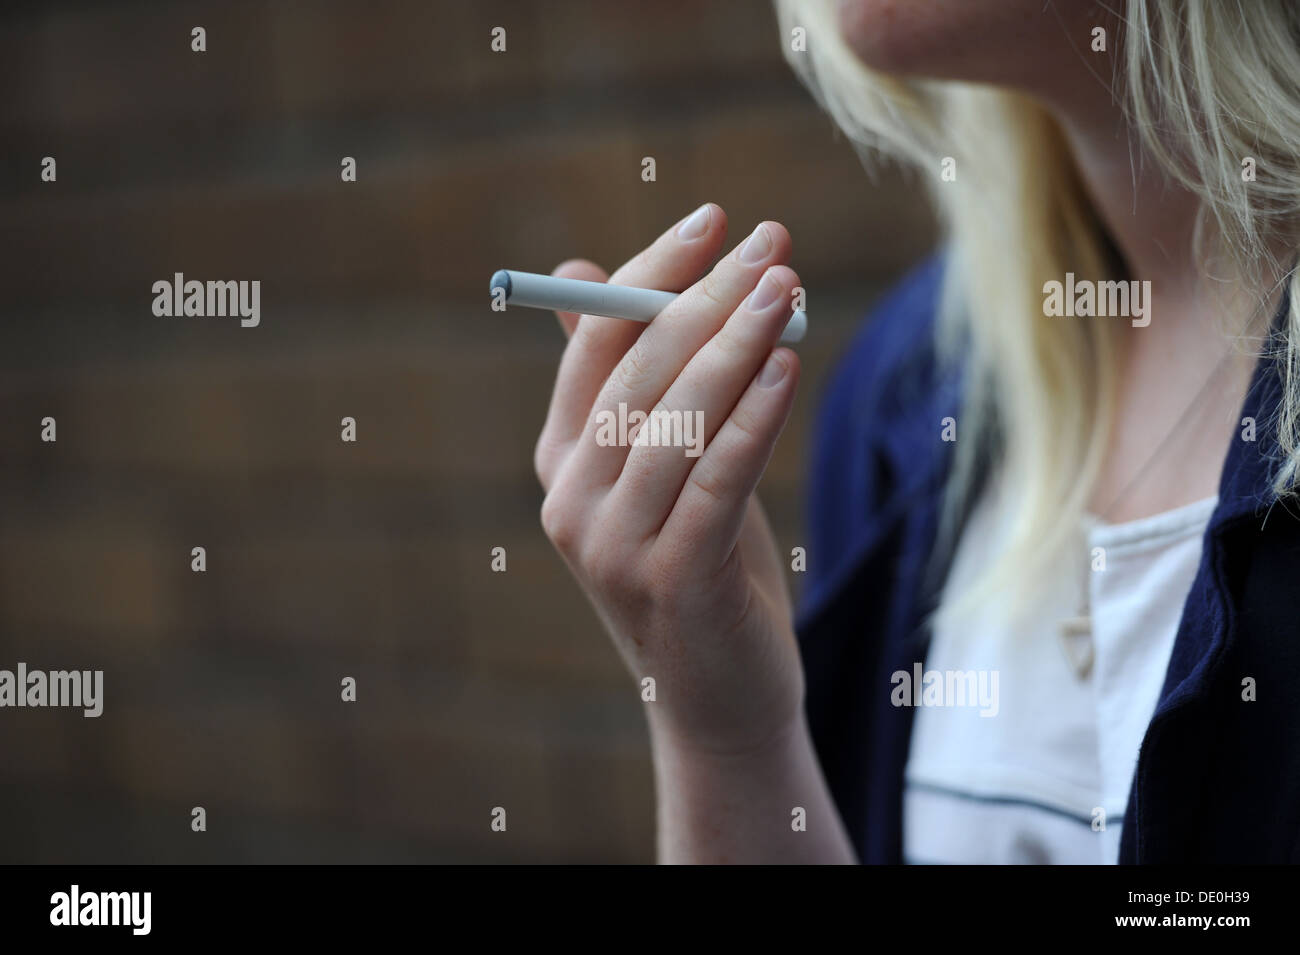 A girl holds an electronic cigarette in her hand. - Stock Image